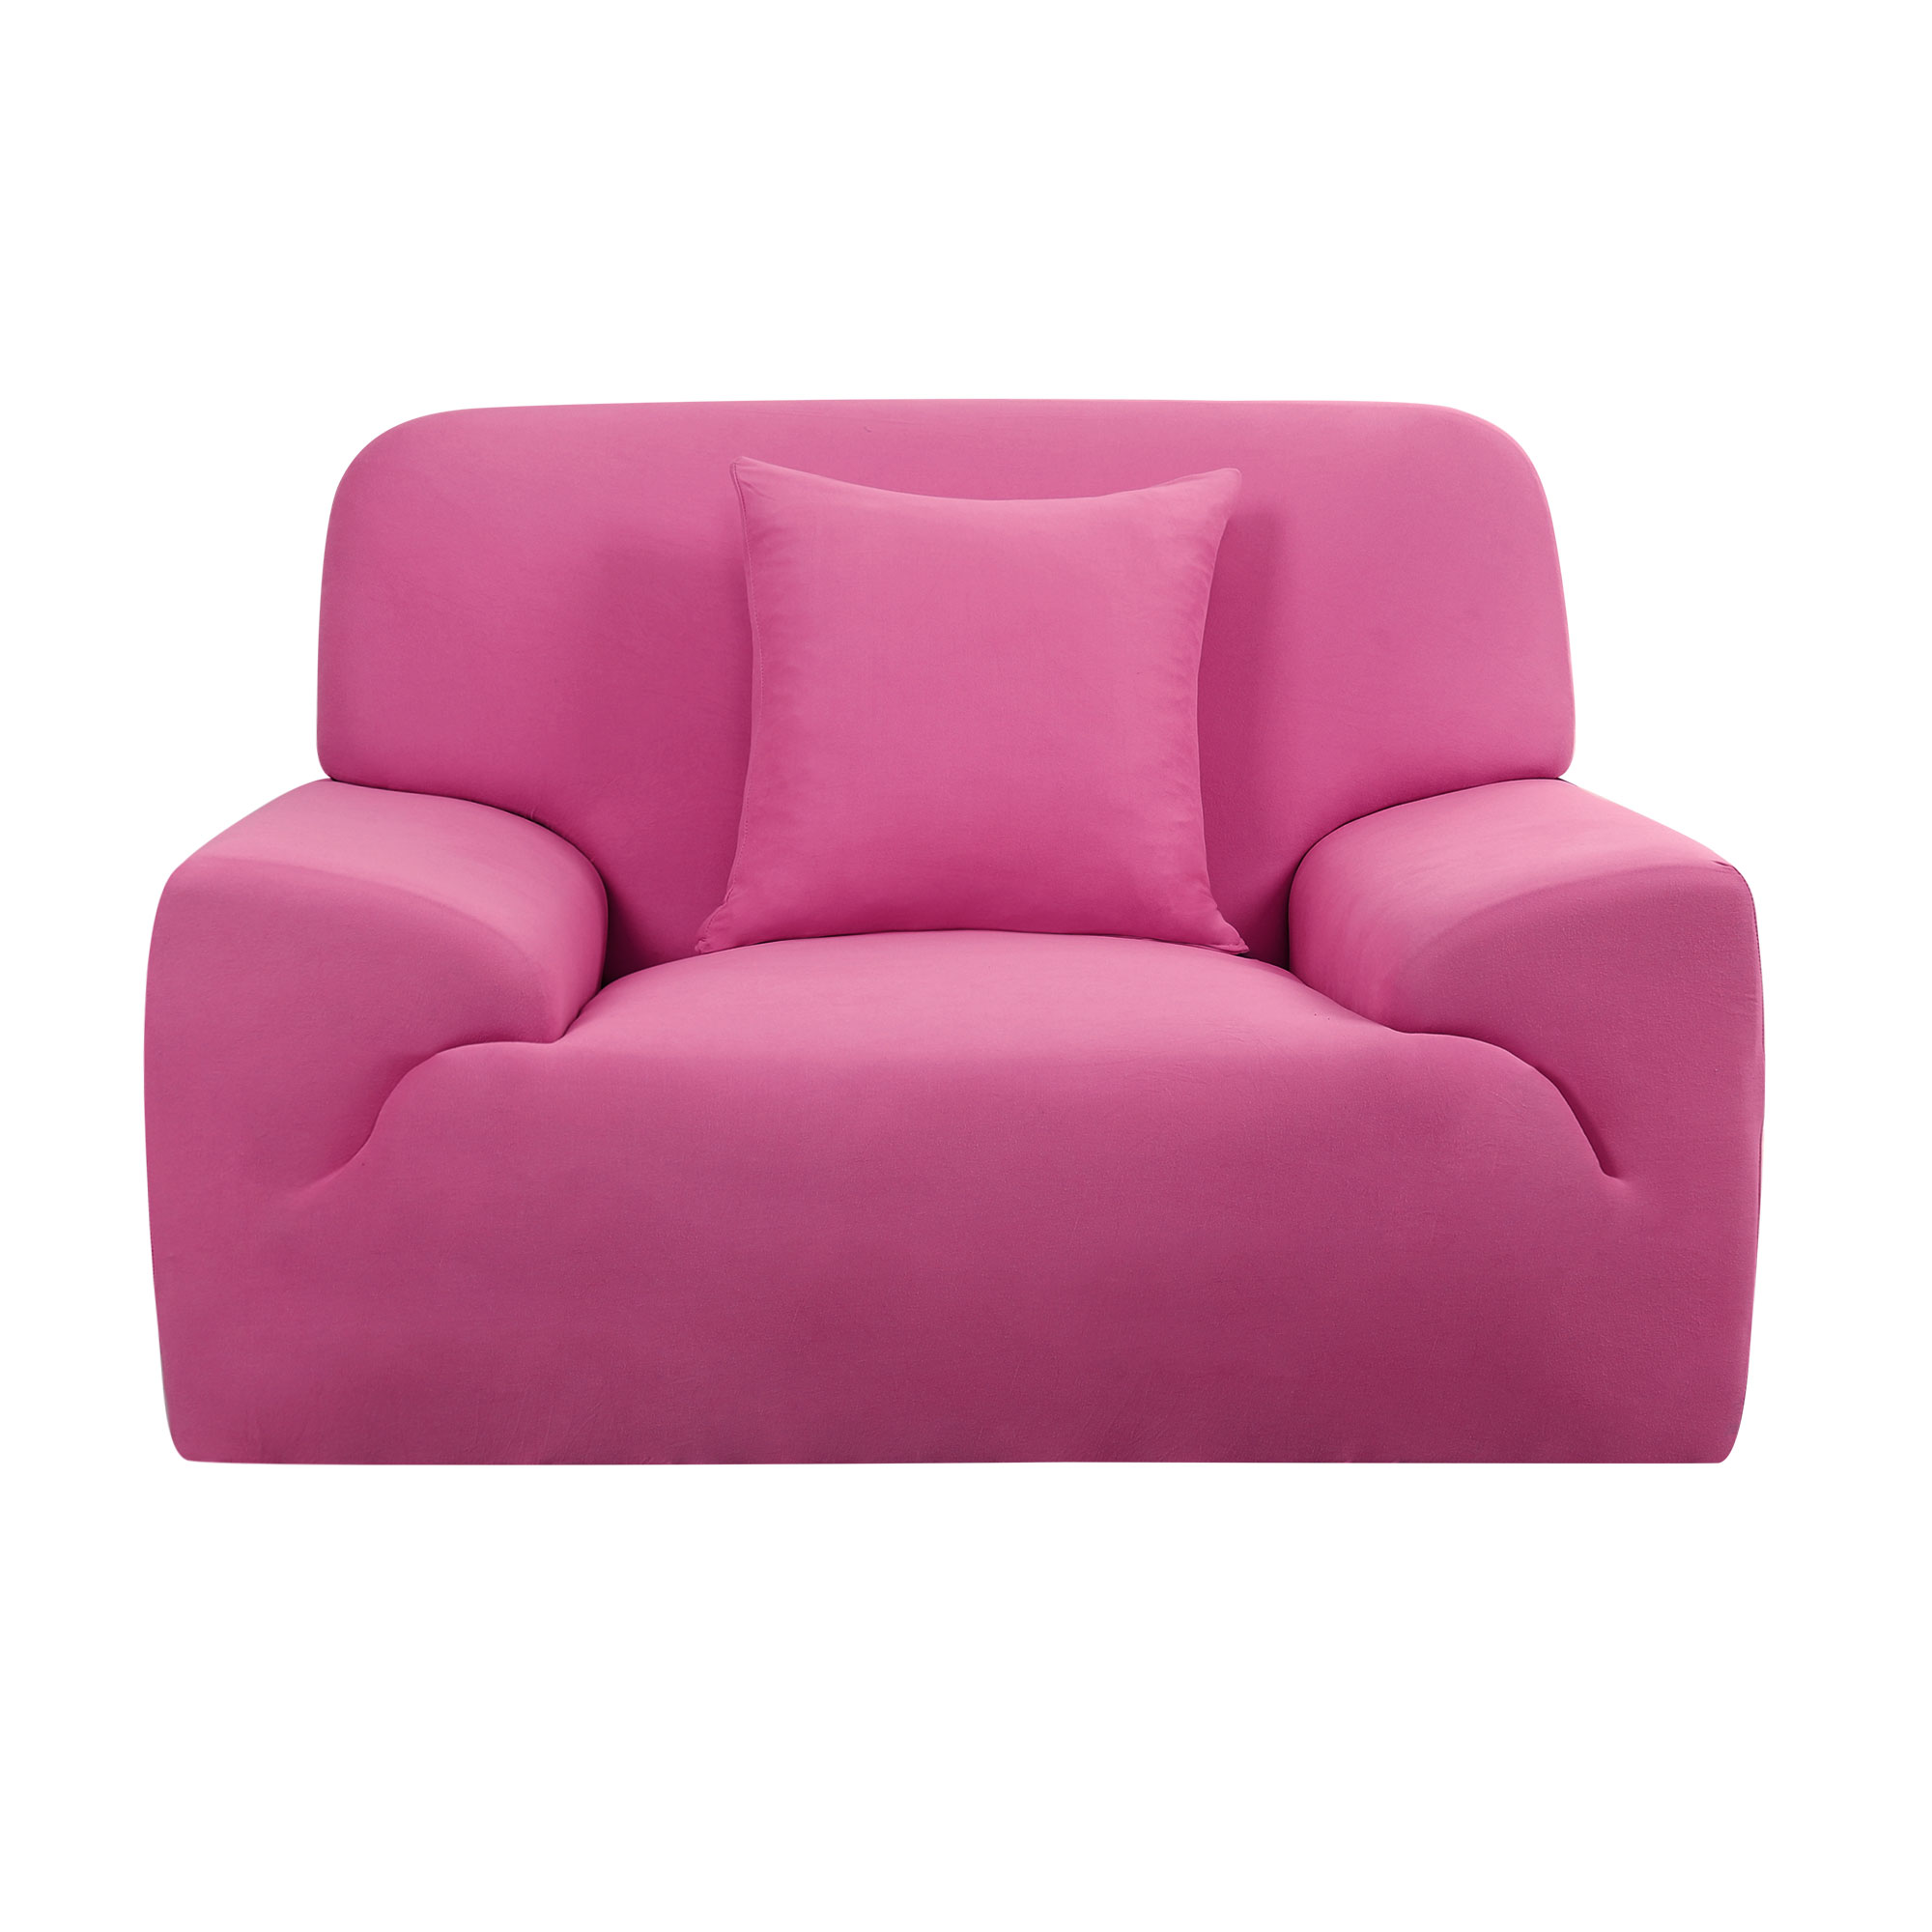 Furniture Sofa Chair Couch Elastic Stretch Cover Slipcover Fuchsia 35''-55''